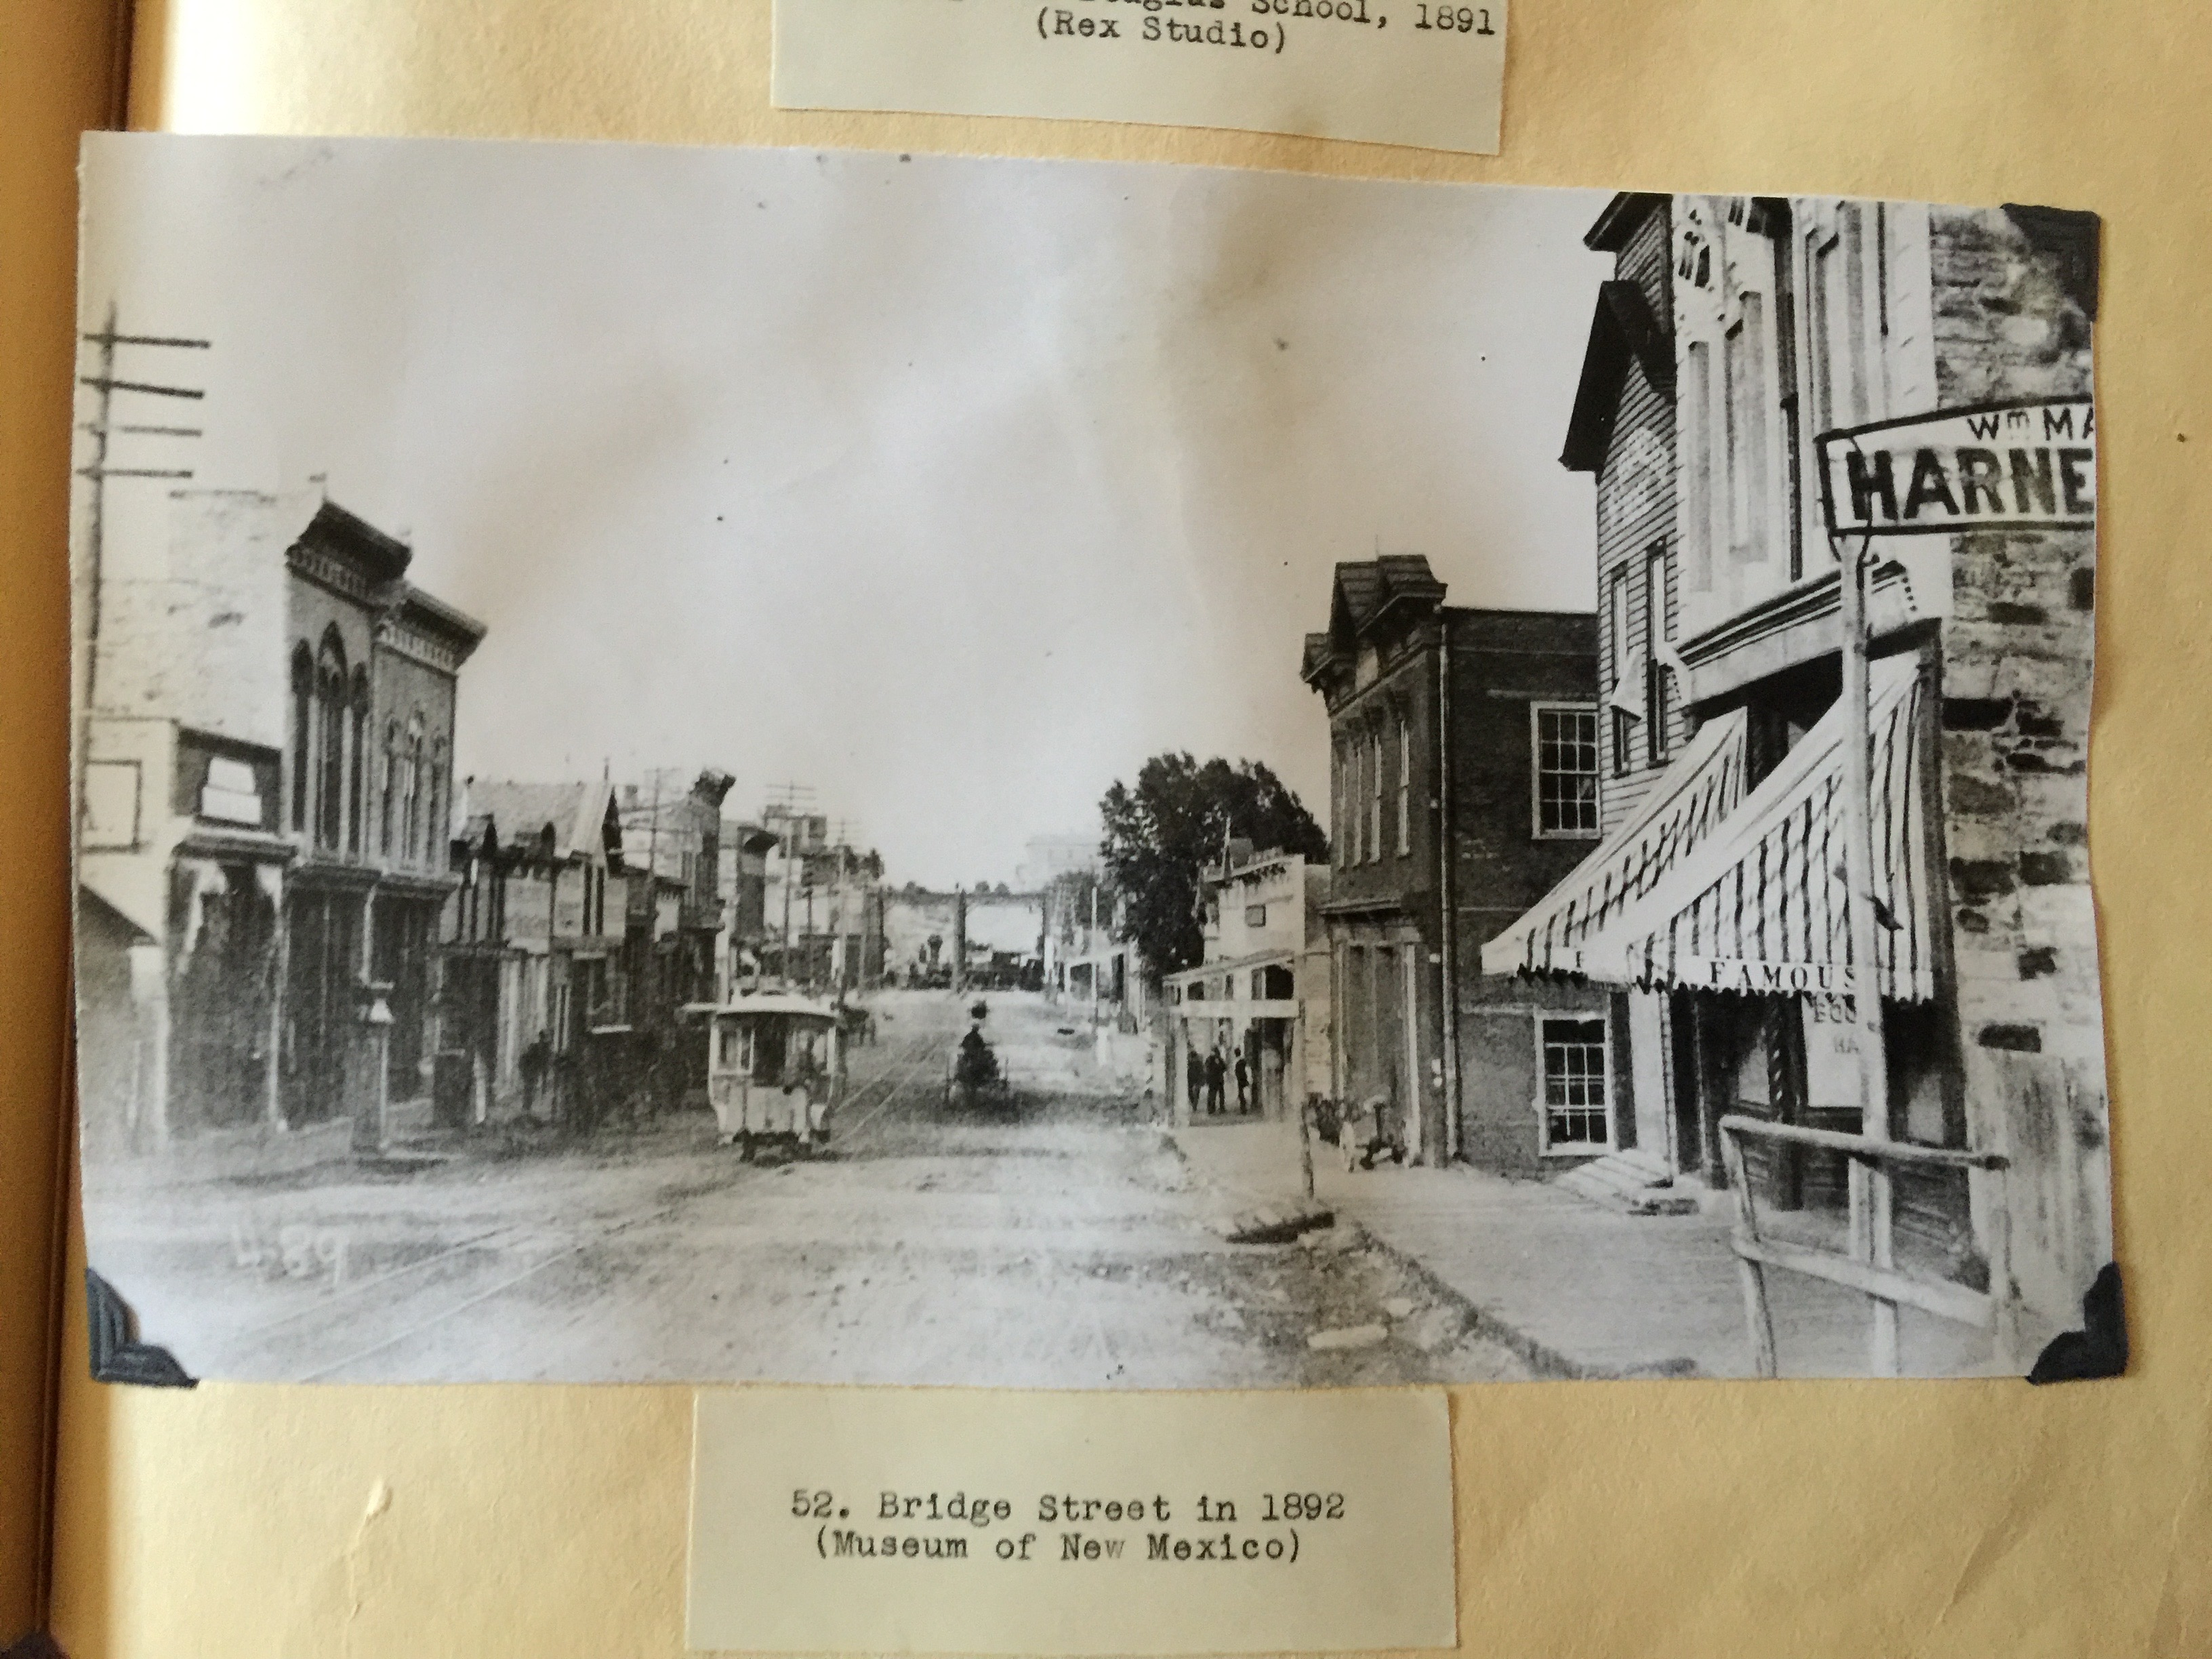 Black and white historic photo of street scene with a trolley car looking towards a bridge in the distance. Photo is glued into a scrapbook and shows warping and discoloration from glue. Beneath photo is a paper tag that reads 52. Bridge Street in 1892 (Museum of New Mexico).